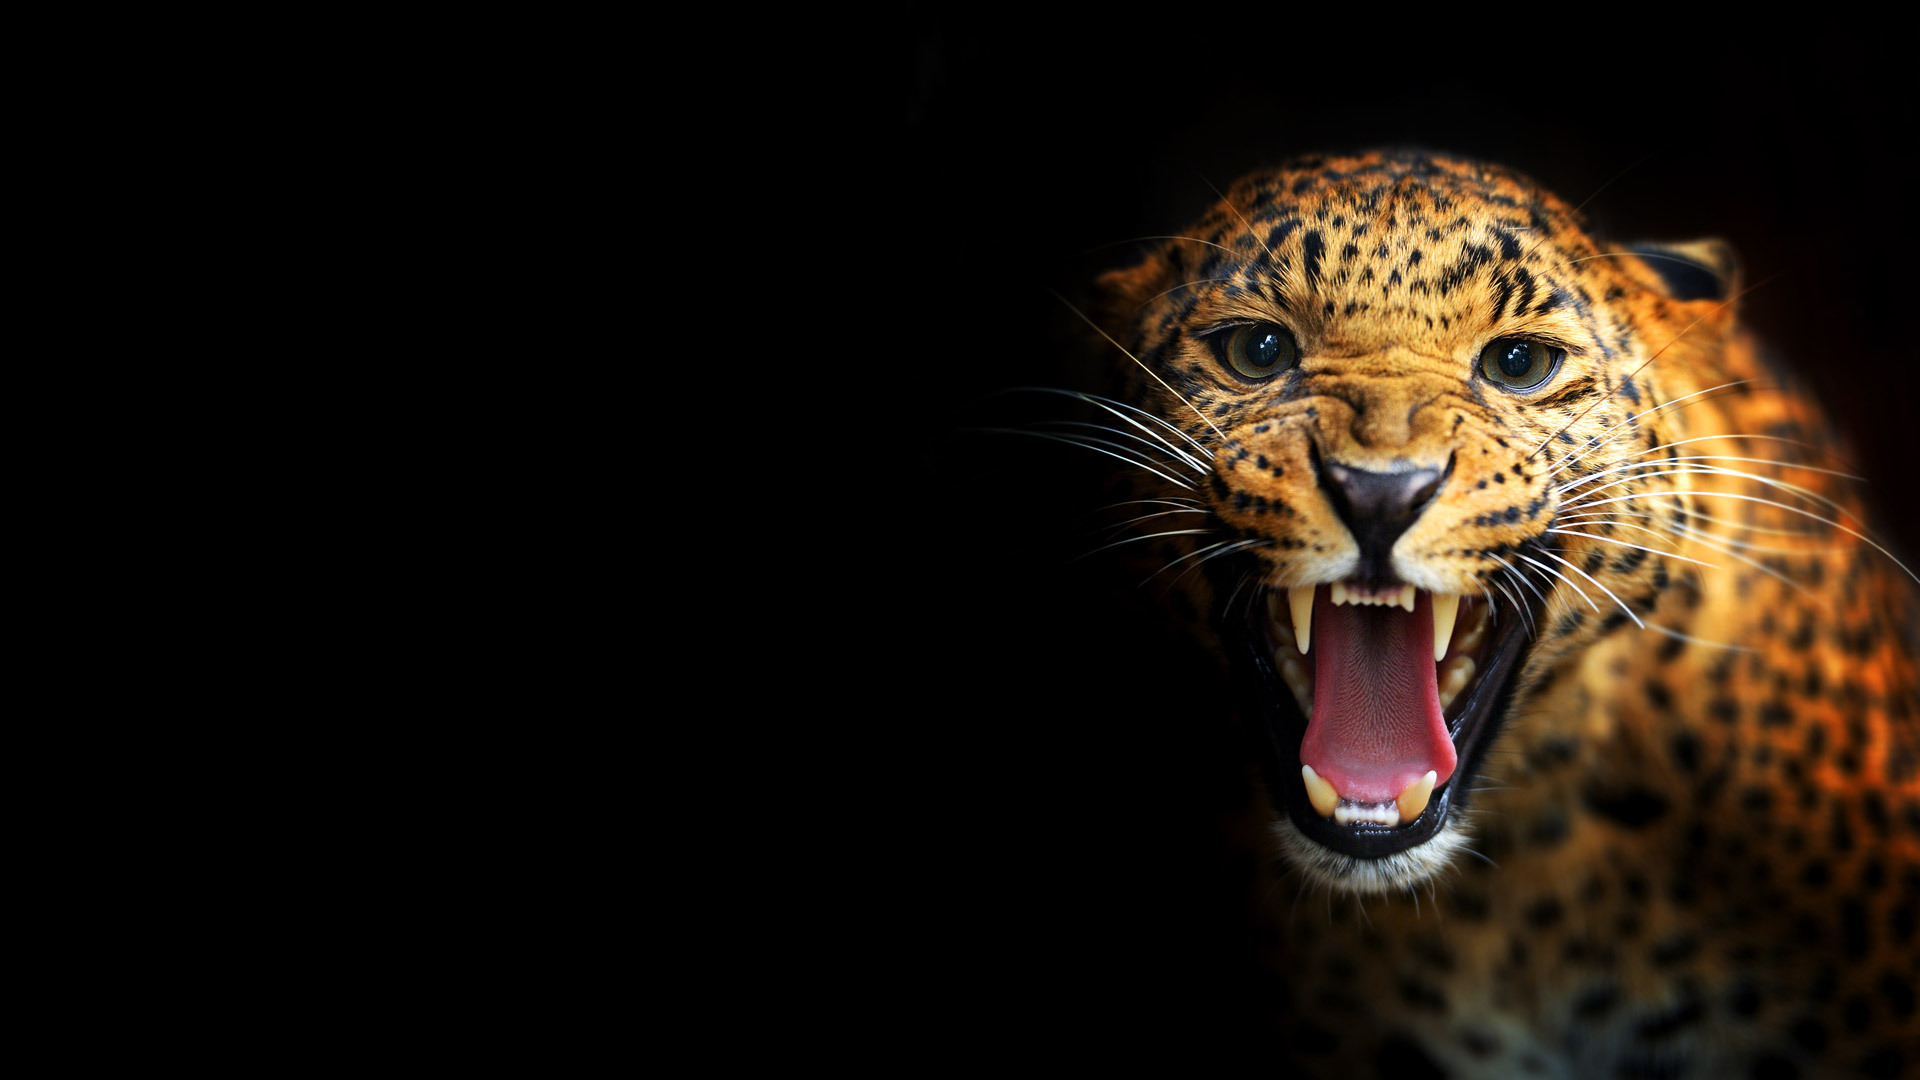 Leopard on a black background wallpapers and images   wallpapers 1920x1080